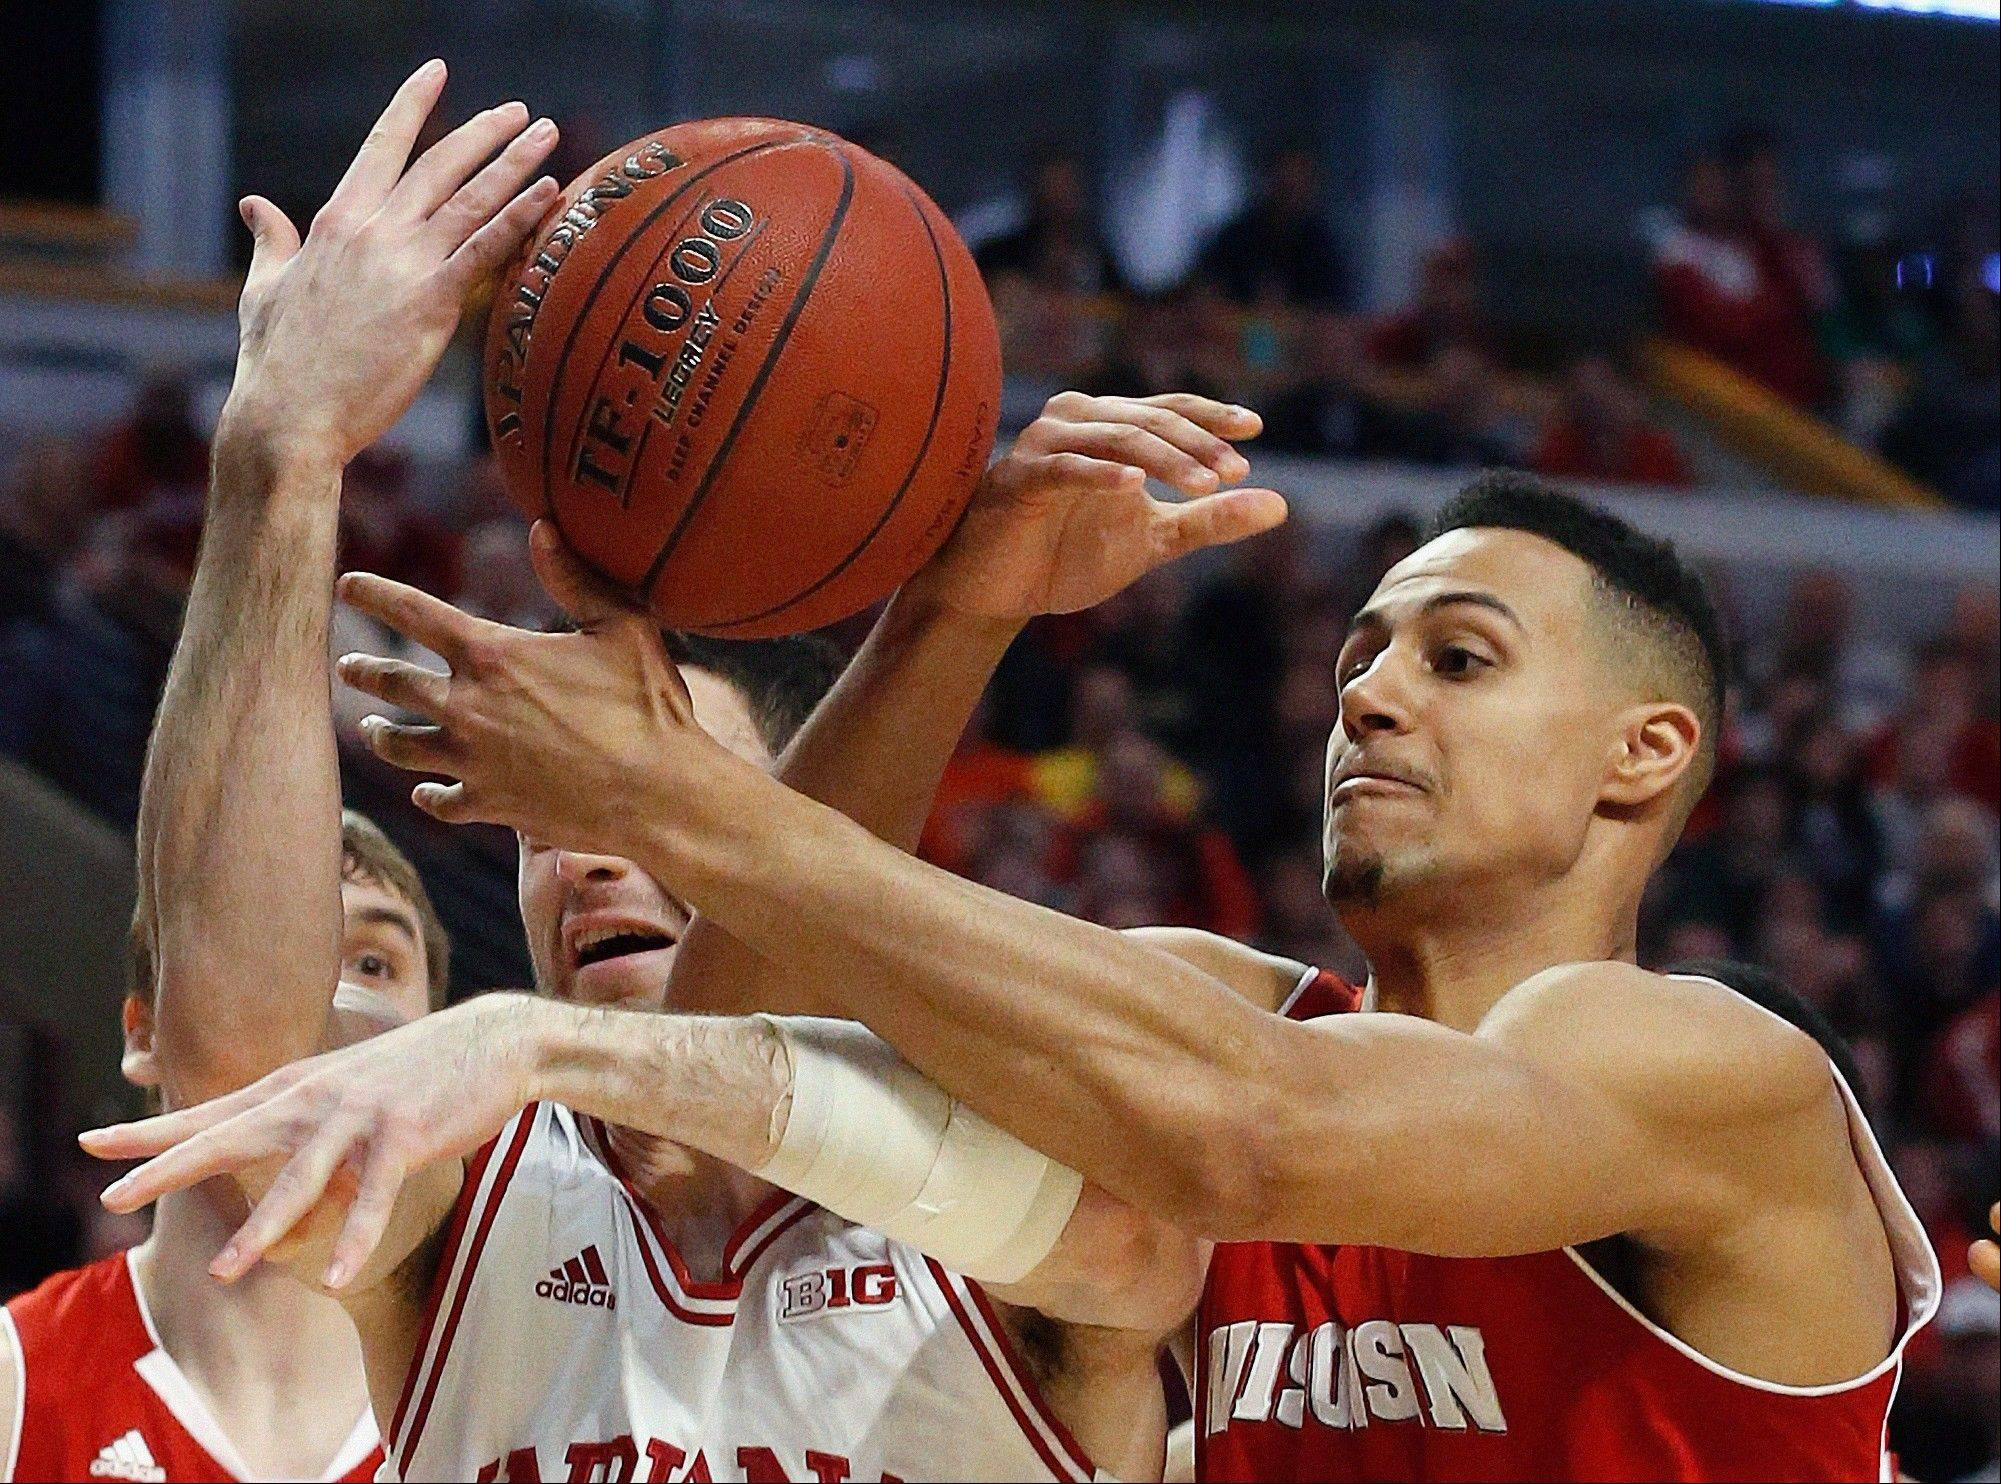 Indiana�s Will Sheehey, left, and Wisconsin�s Ryan Evans battle for a loose ball during the first half of an NCAA college basketball game in the semifinals of the Big Ten tournament Saturday, March 16, 2013, in Chicago. (AP Photo/Charles Rex Arbogast)